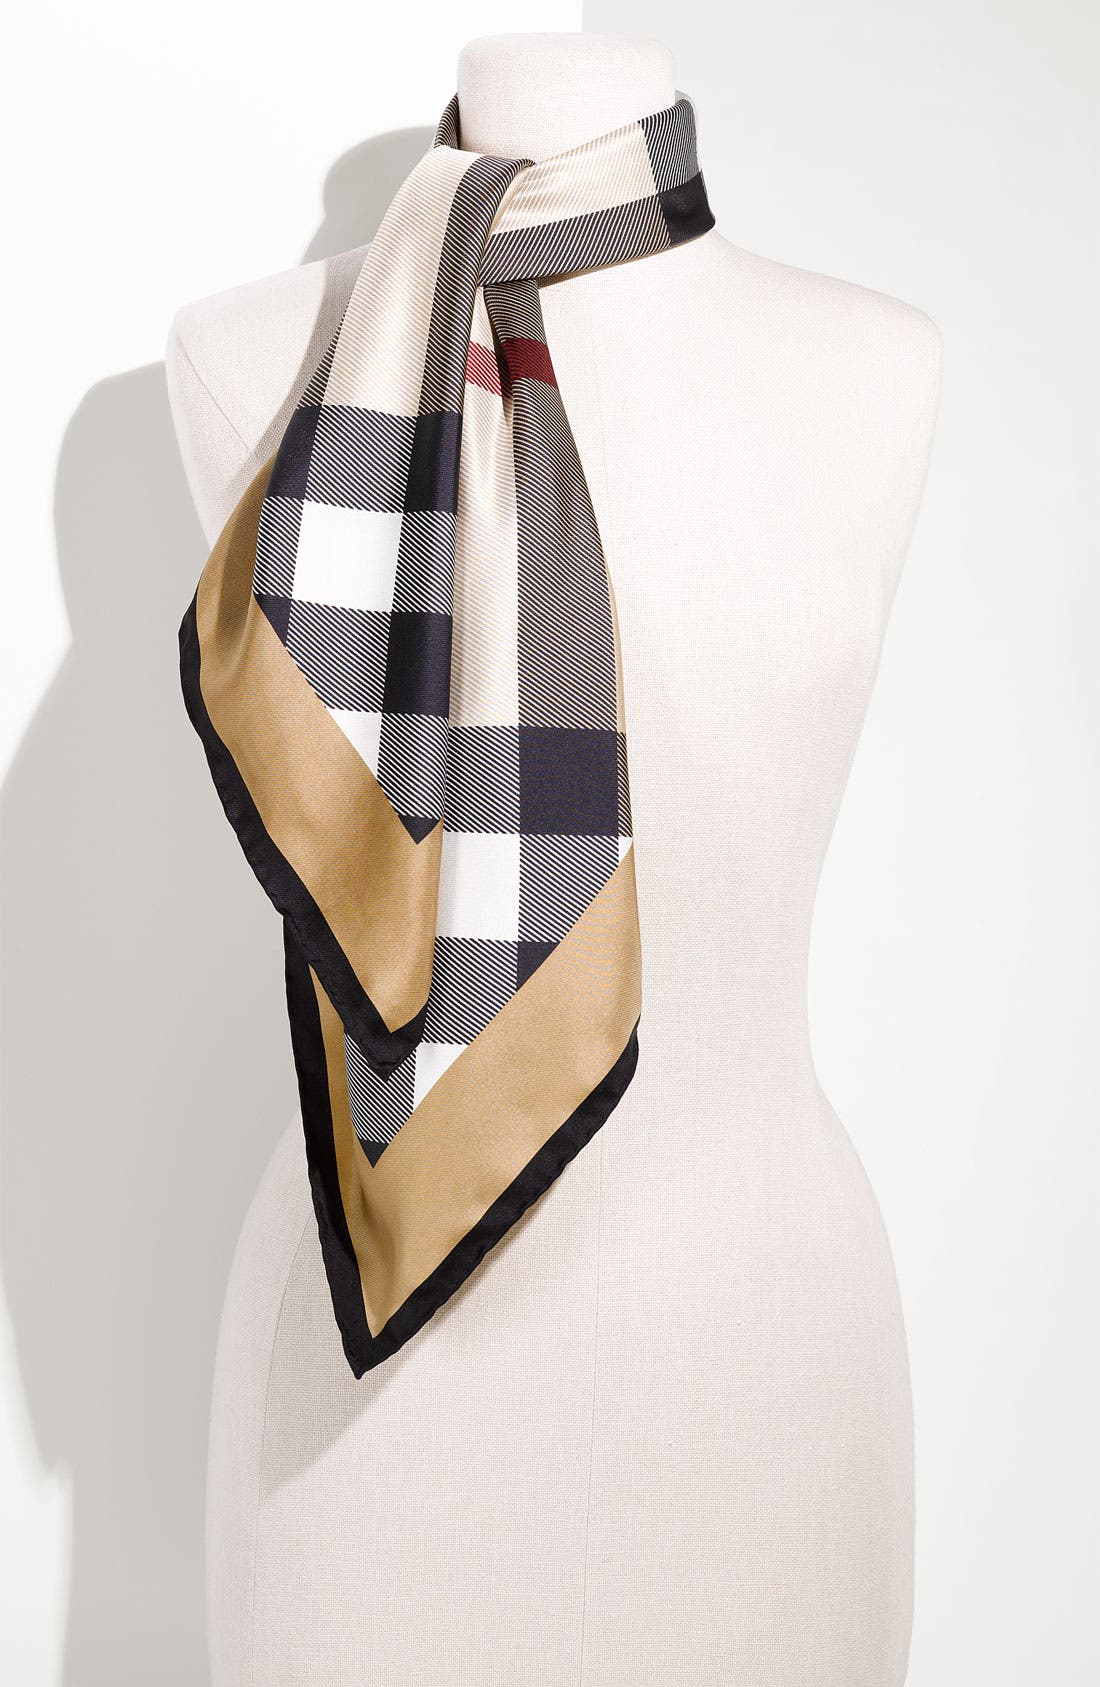 Main Image - Burberry Tweed Check Scarf